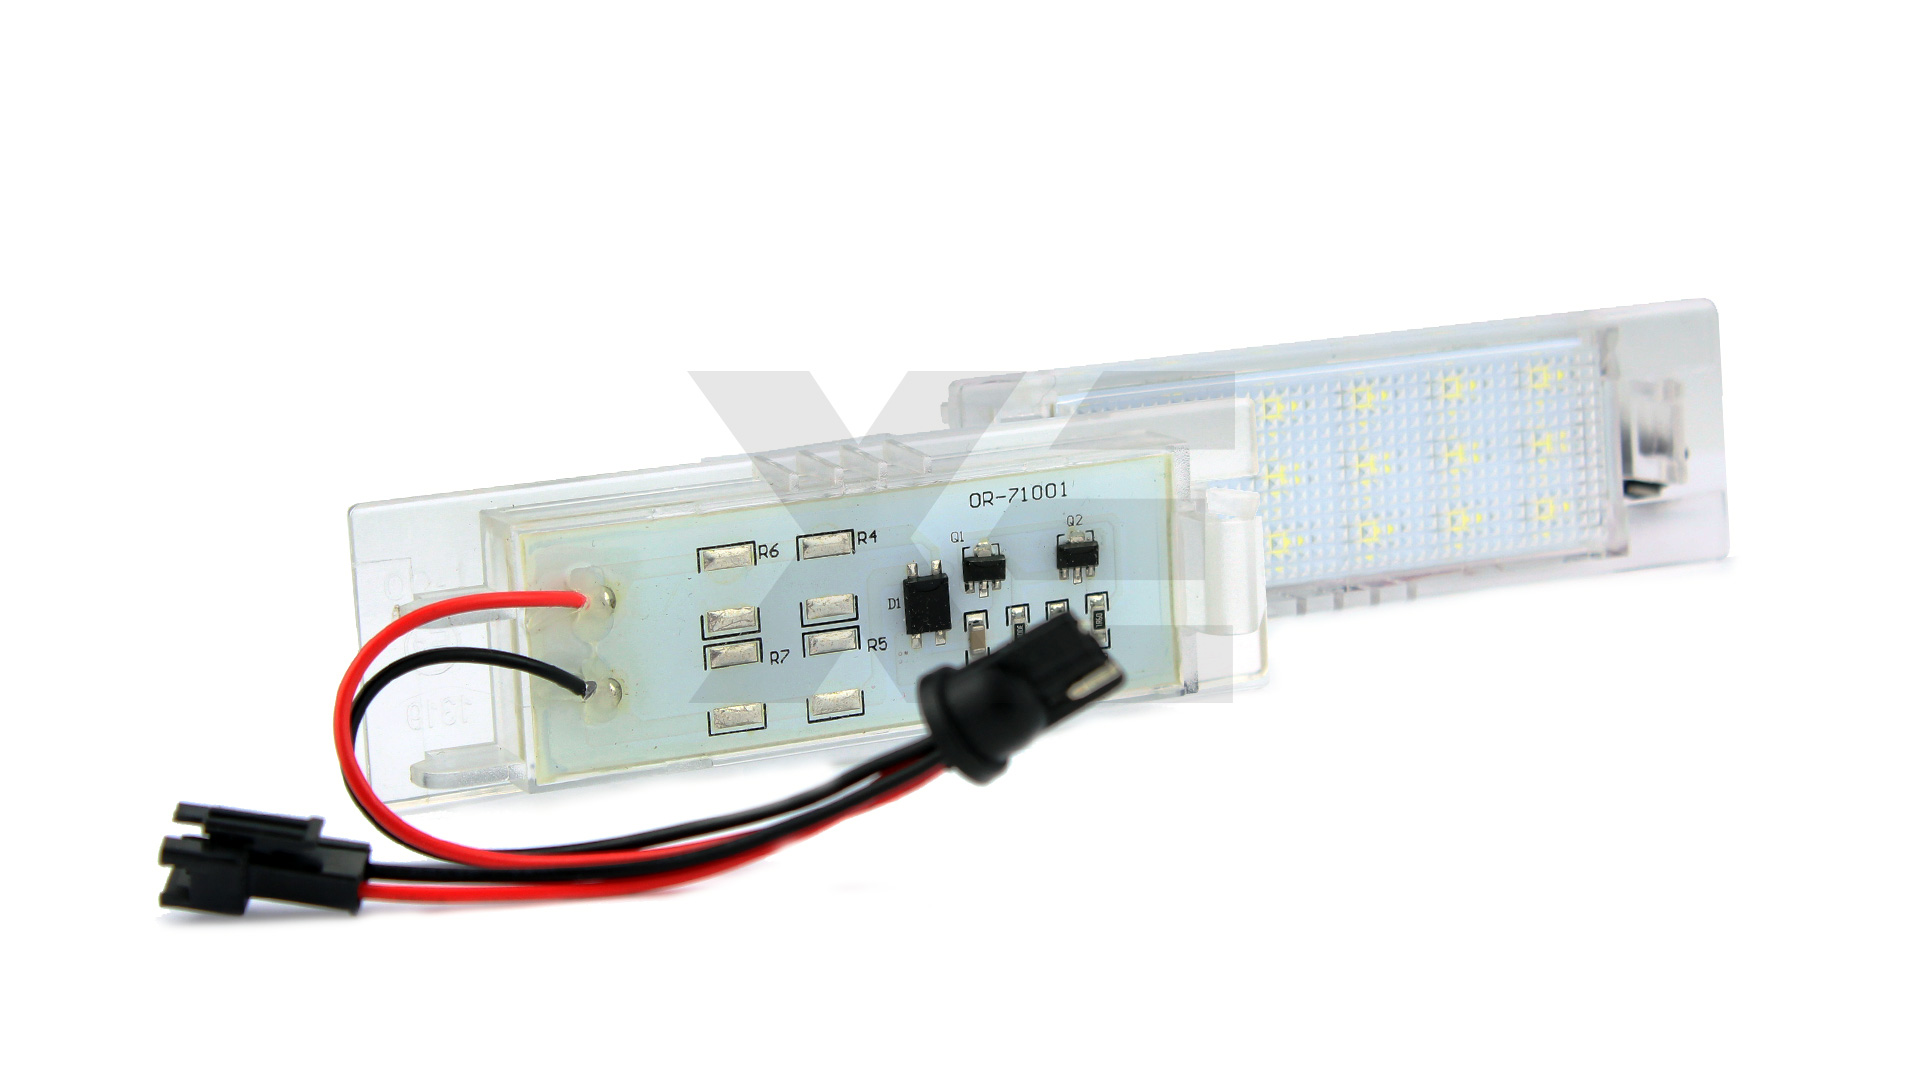 Kit Plafoniere LED Targa Ford Ka E Opel